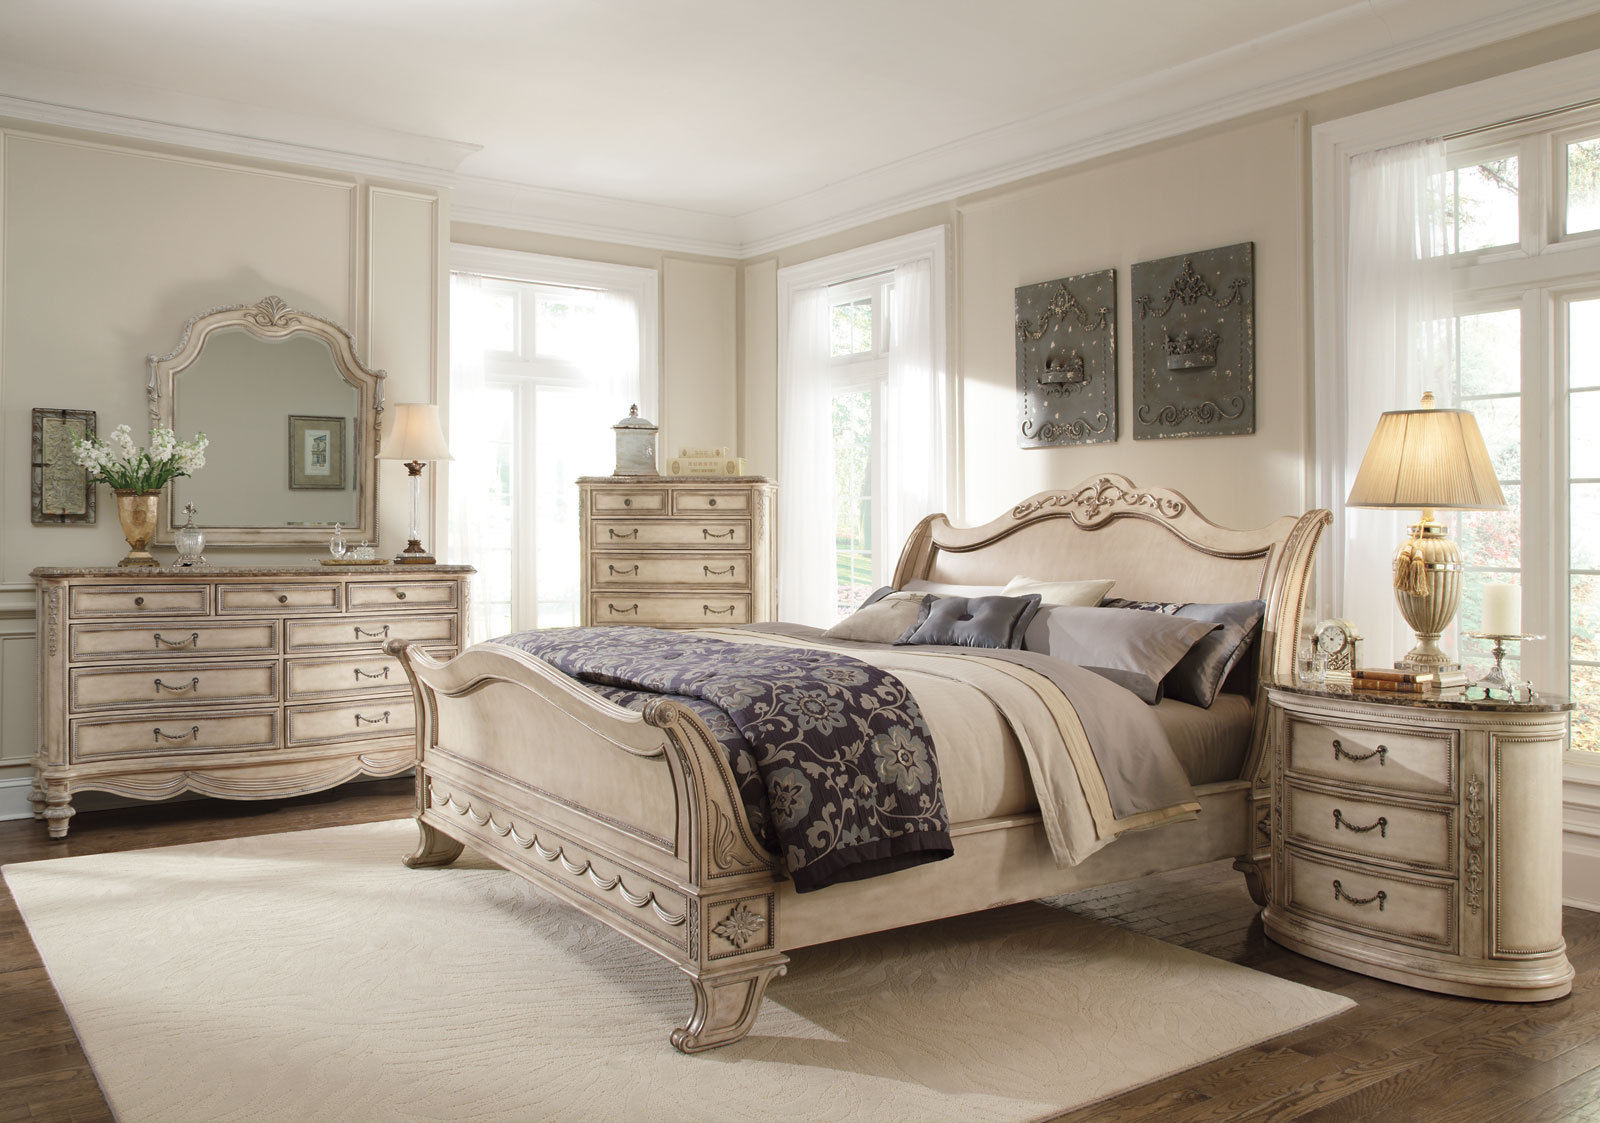 Queen Bedroom Sets For The Modern Style